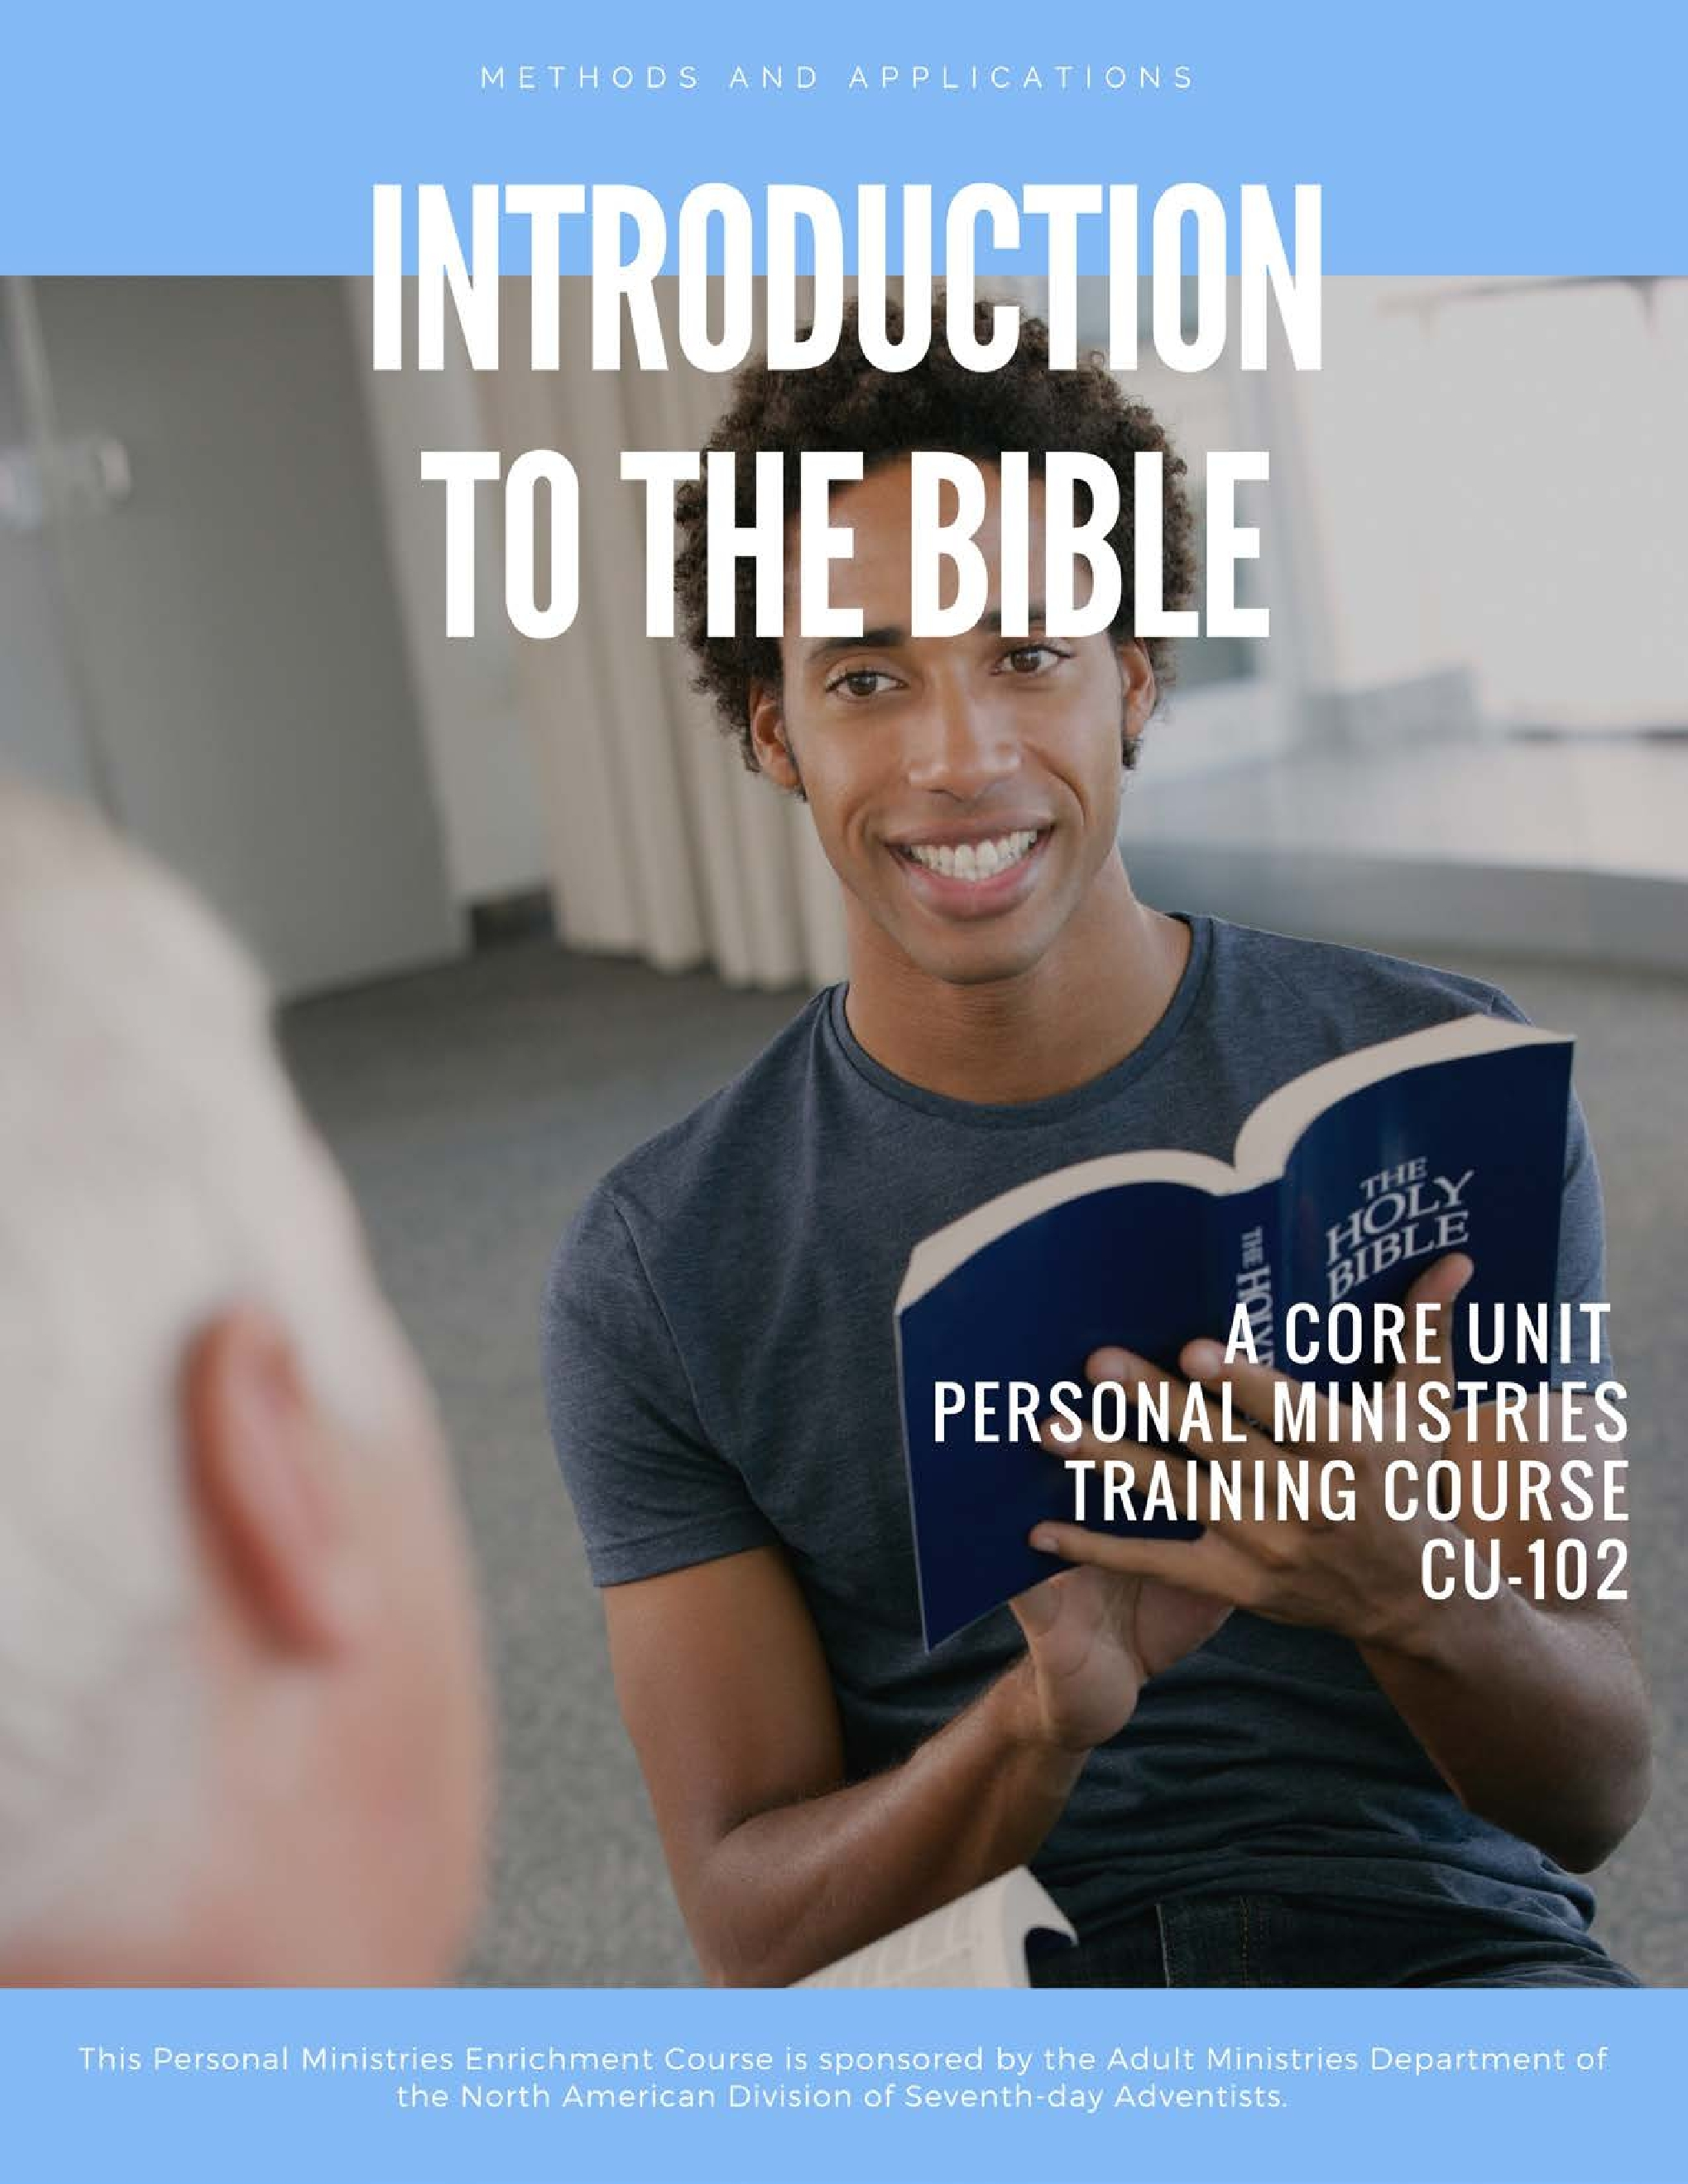 The course is designed as an overall introduction to the Bible. To some it may seem elemental, but it is always valuable to see the big picture and have in mind the broad outlines of one's textbook, in this case the entire Bible. -                              Click the cover to view>>